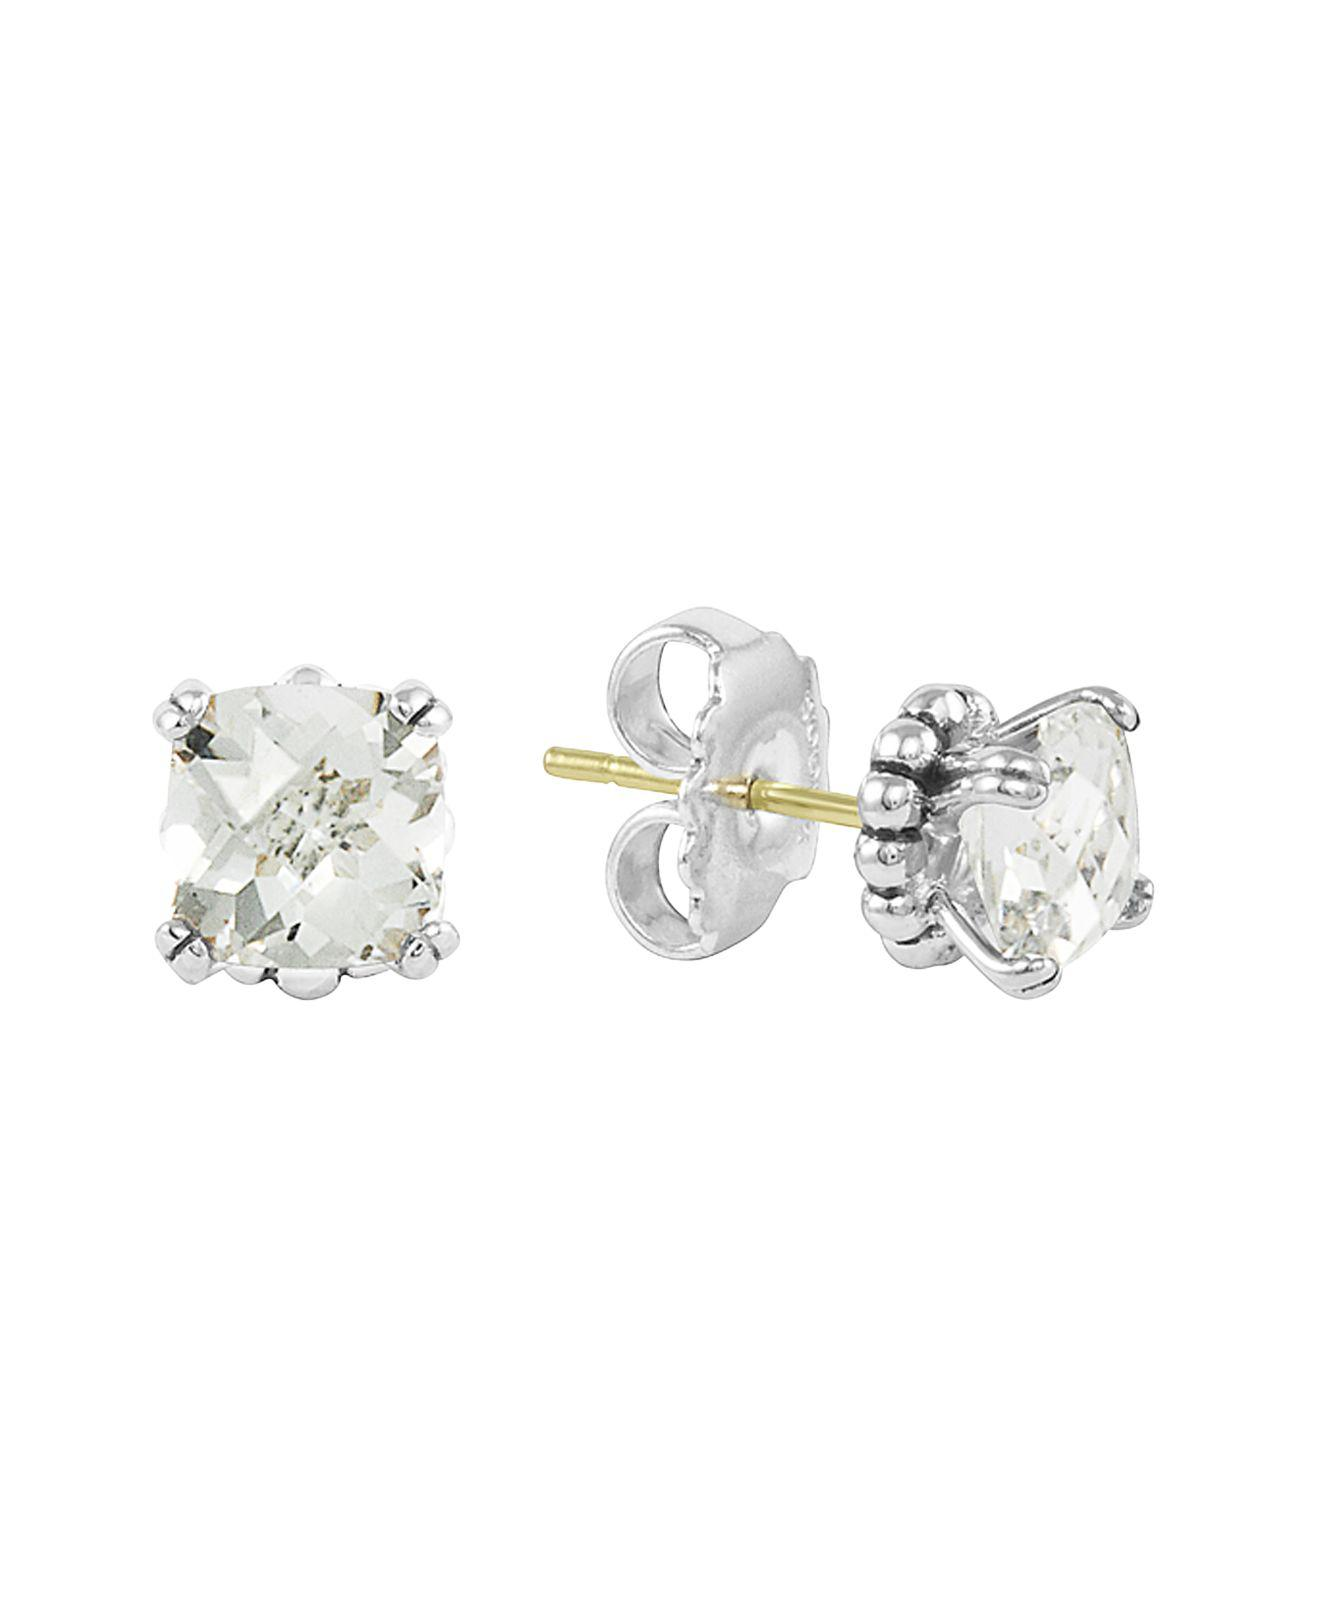 ef gold jolie diamonds and af earrings products with angelina jewelers collection topaz white stud